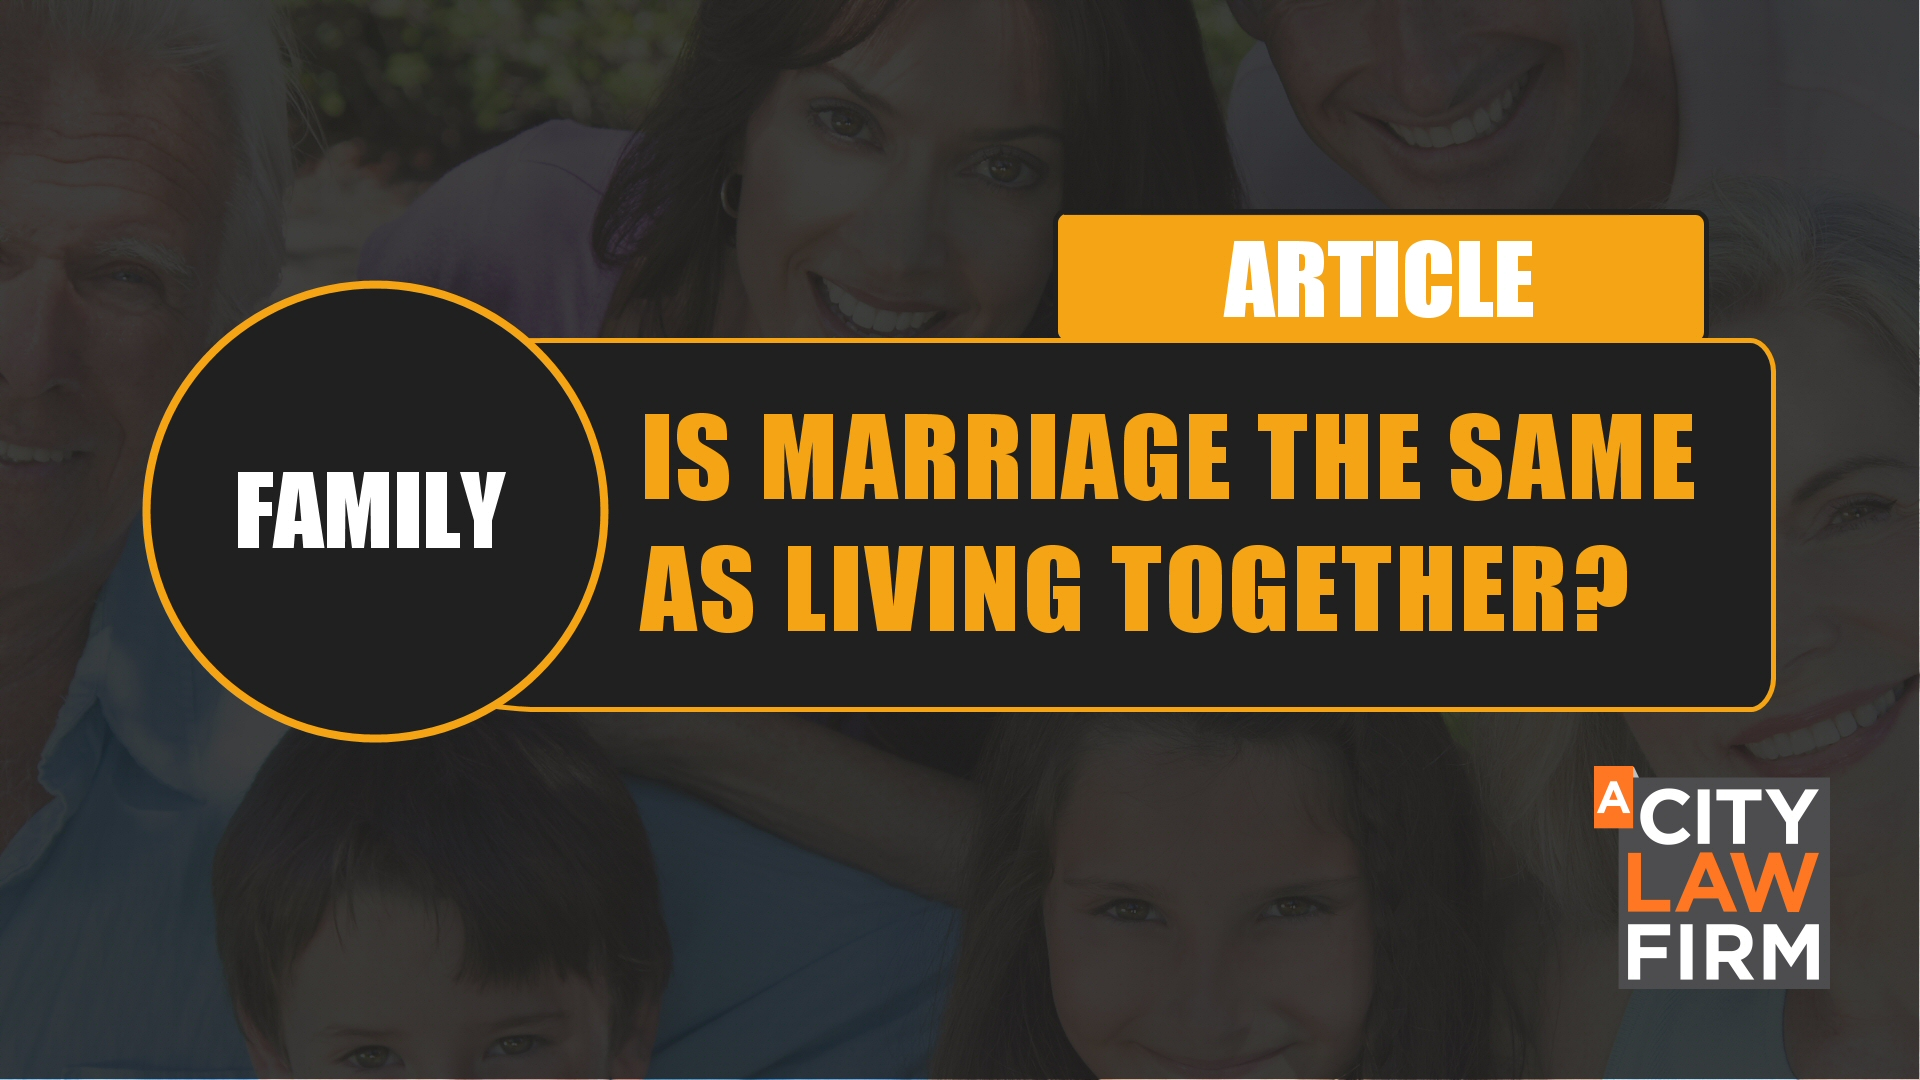 Is Marriage the same as living together?